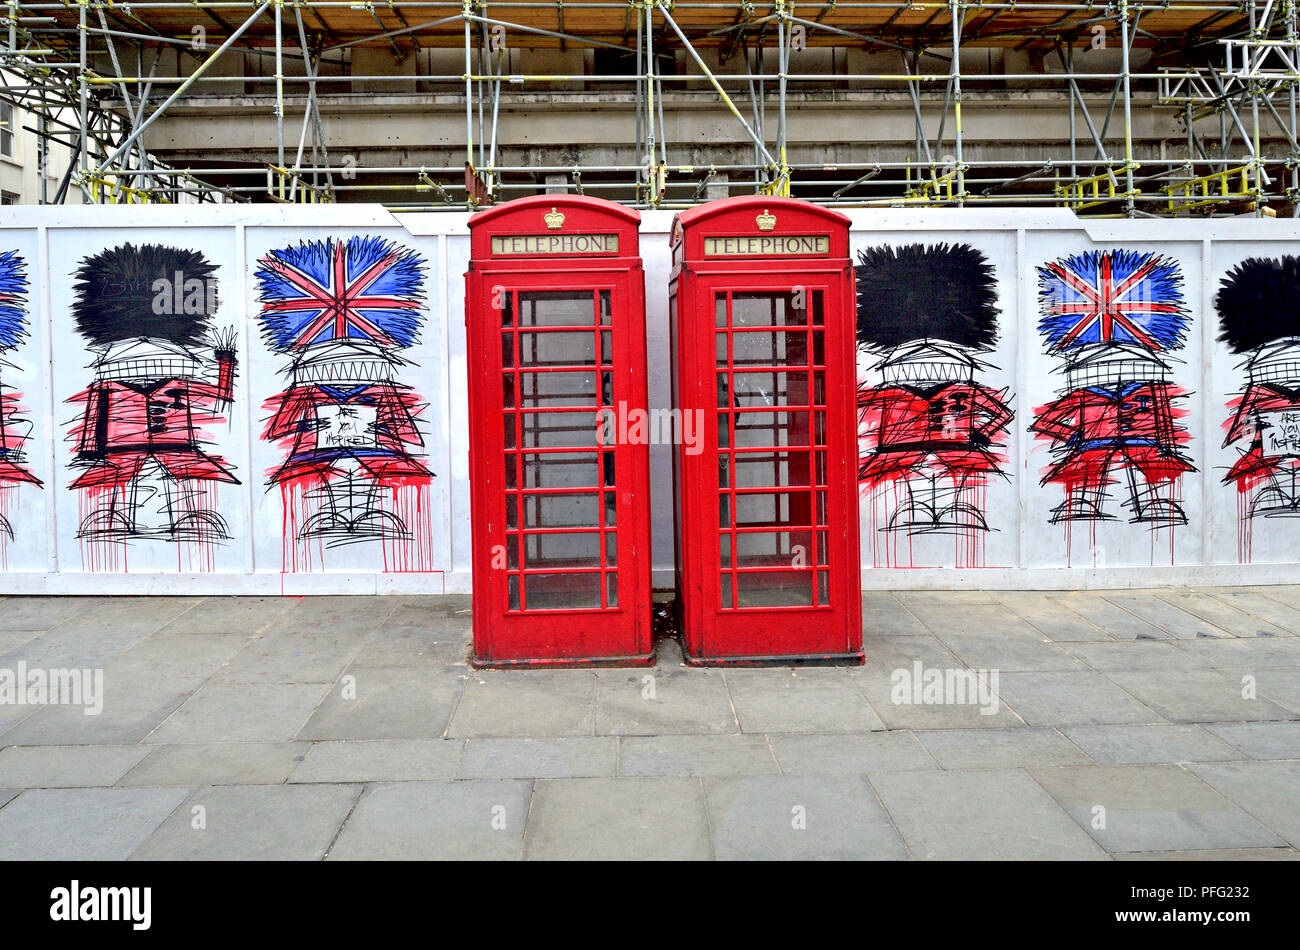 Red telephone boxes and graffiti guardsmen (by Nathan Bowen) in St Martin's Place, London, England, UK. - Stock Image